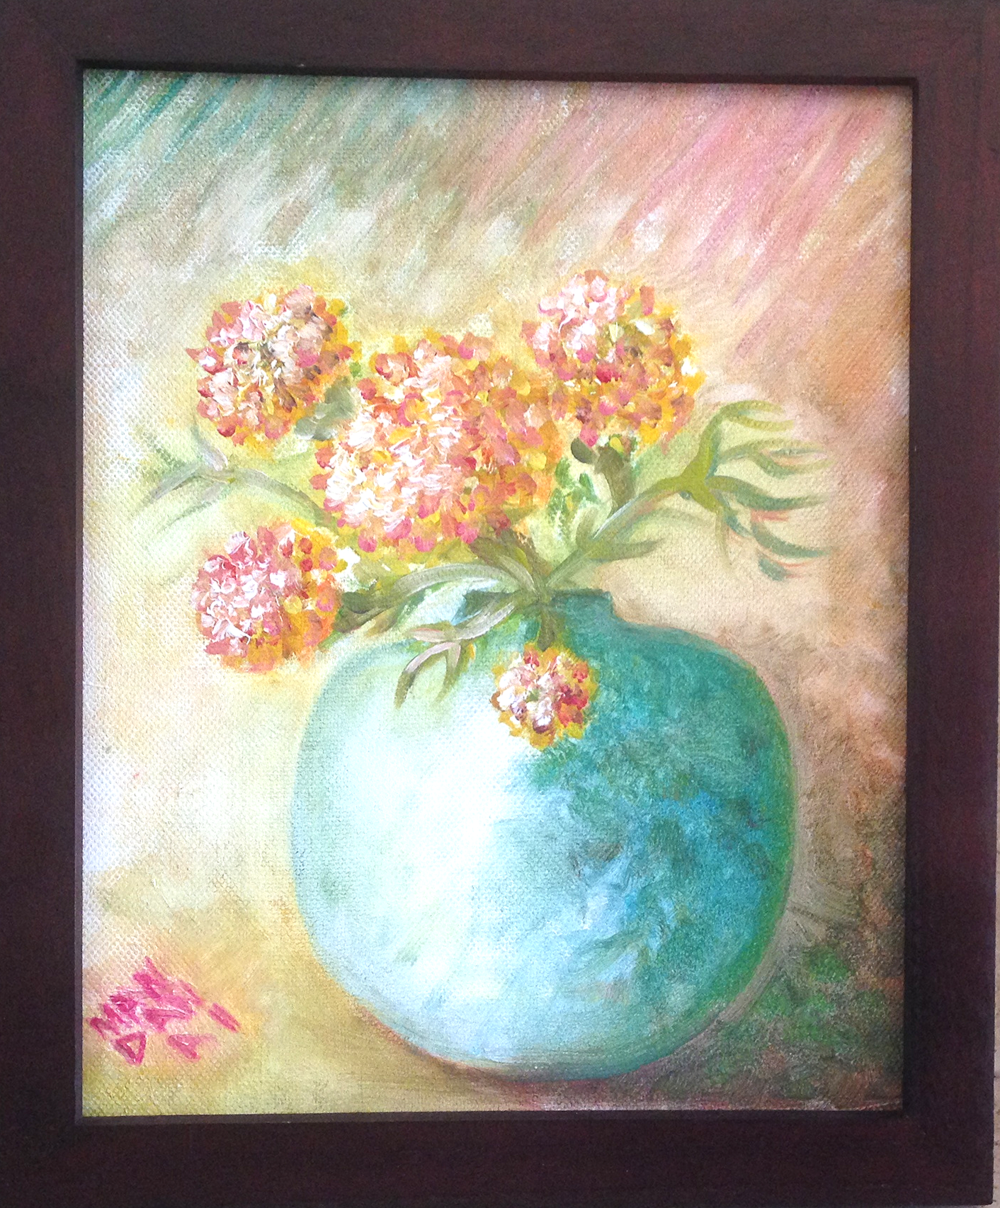 IMAGINARY VASE AND FLOWERS, OIL ON CANVAS, 2012